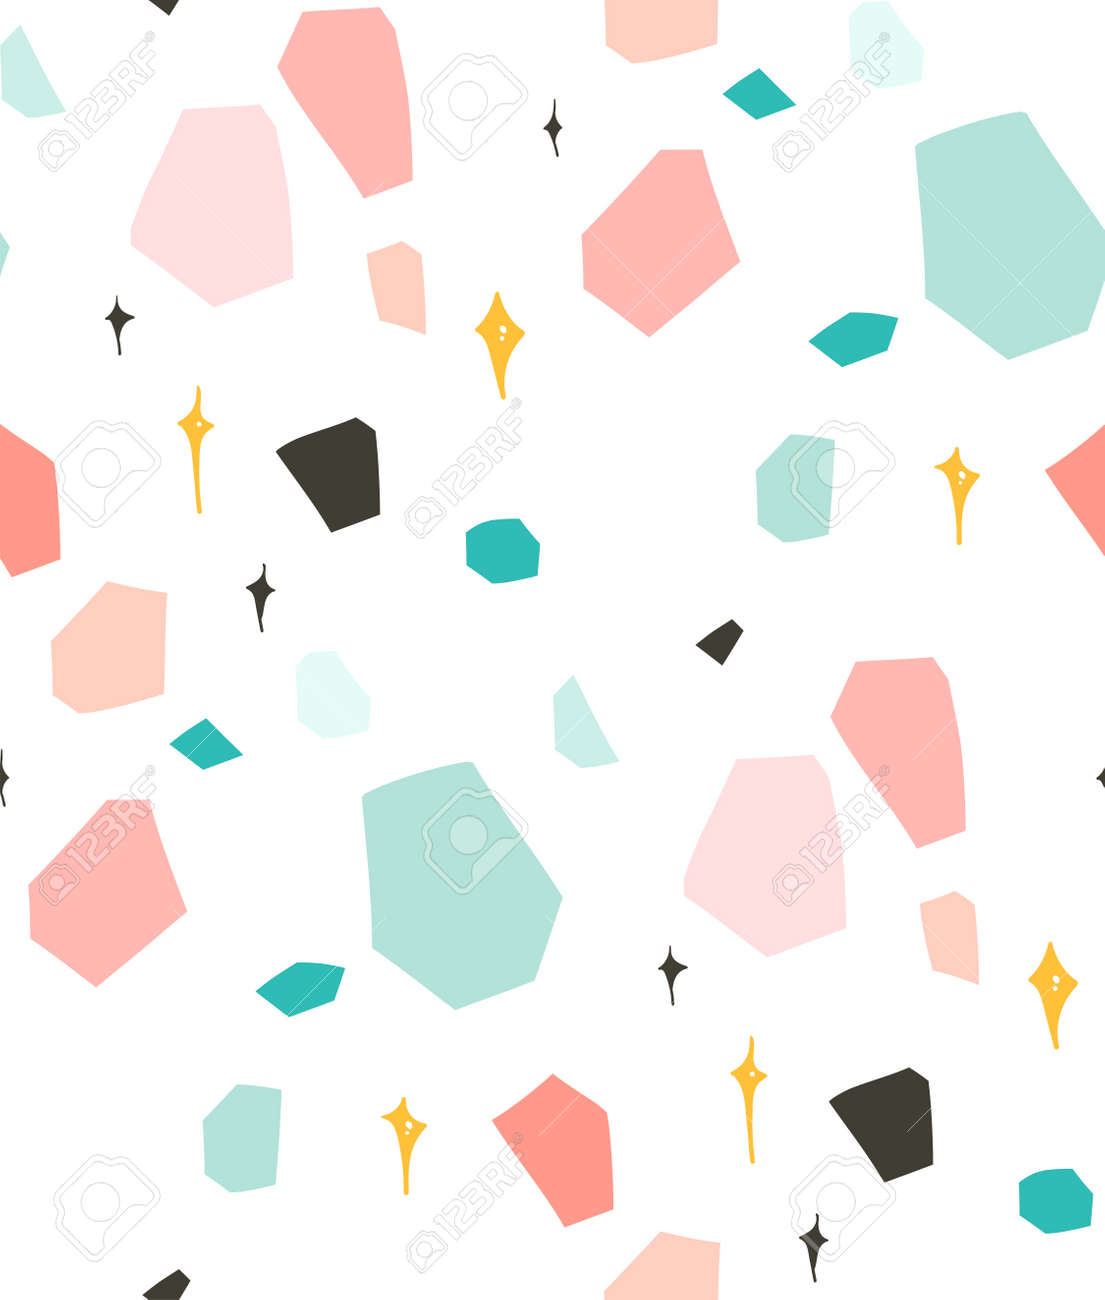 Hand drawn vector abstract graphic simple terrazzo collage seamless pattern isolated on white background. - 100121546